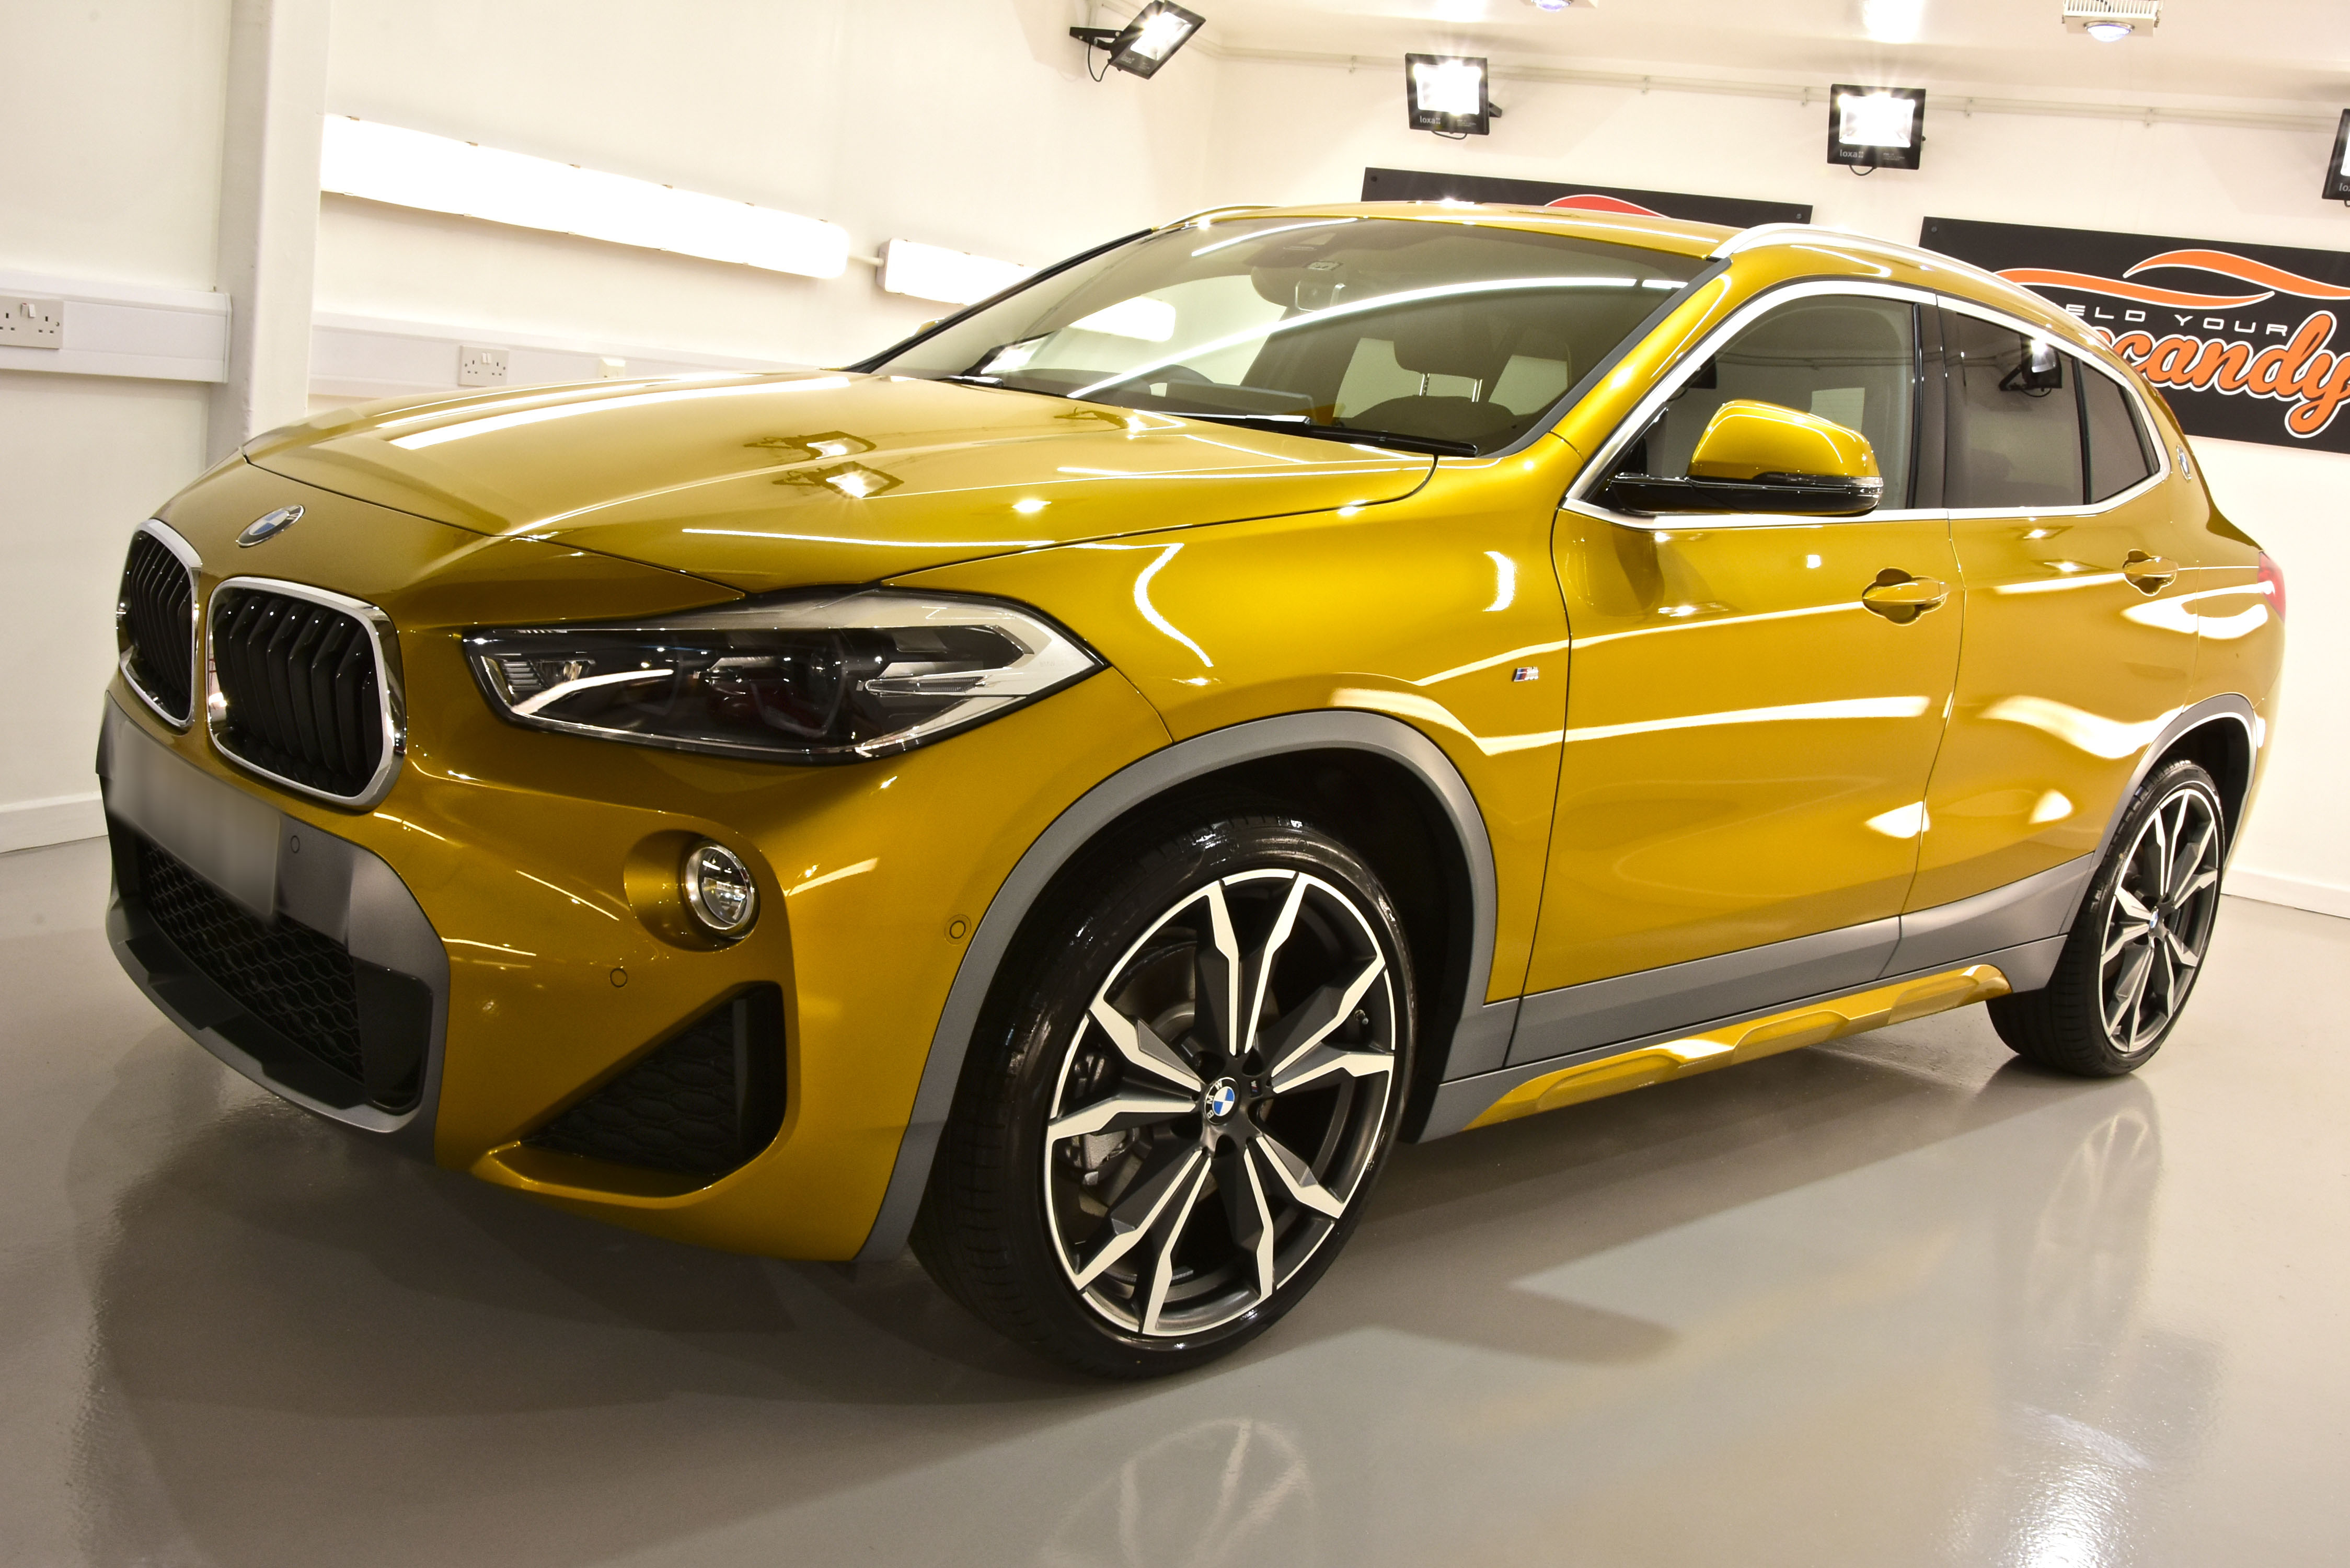 BMW X2 New Car Enhancement and Protection Detail + Gtechniq Crystal Serum Ultra and EXOv4